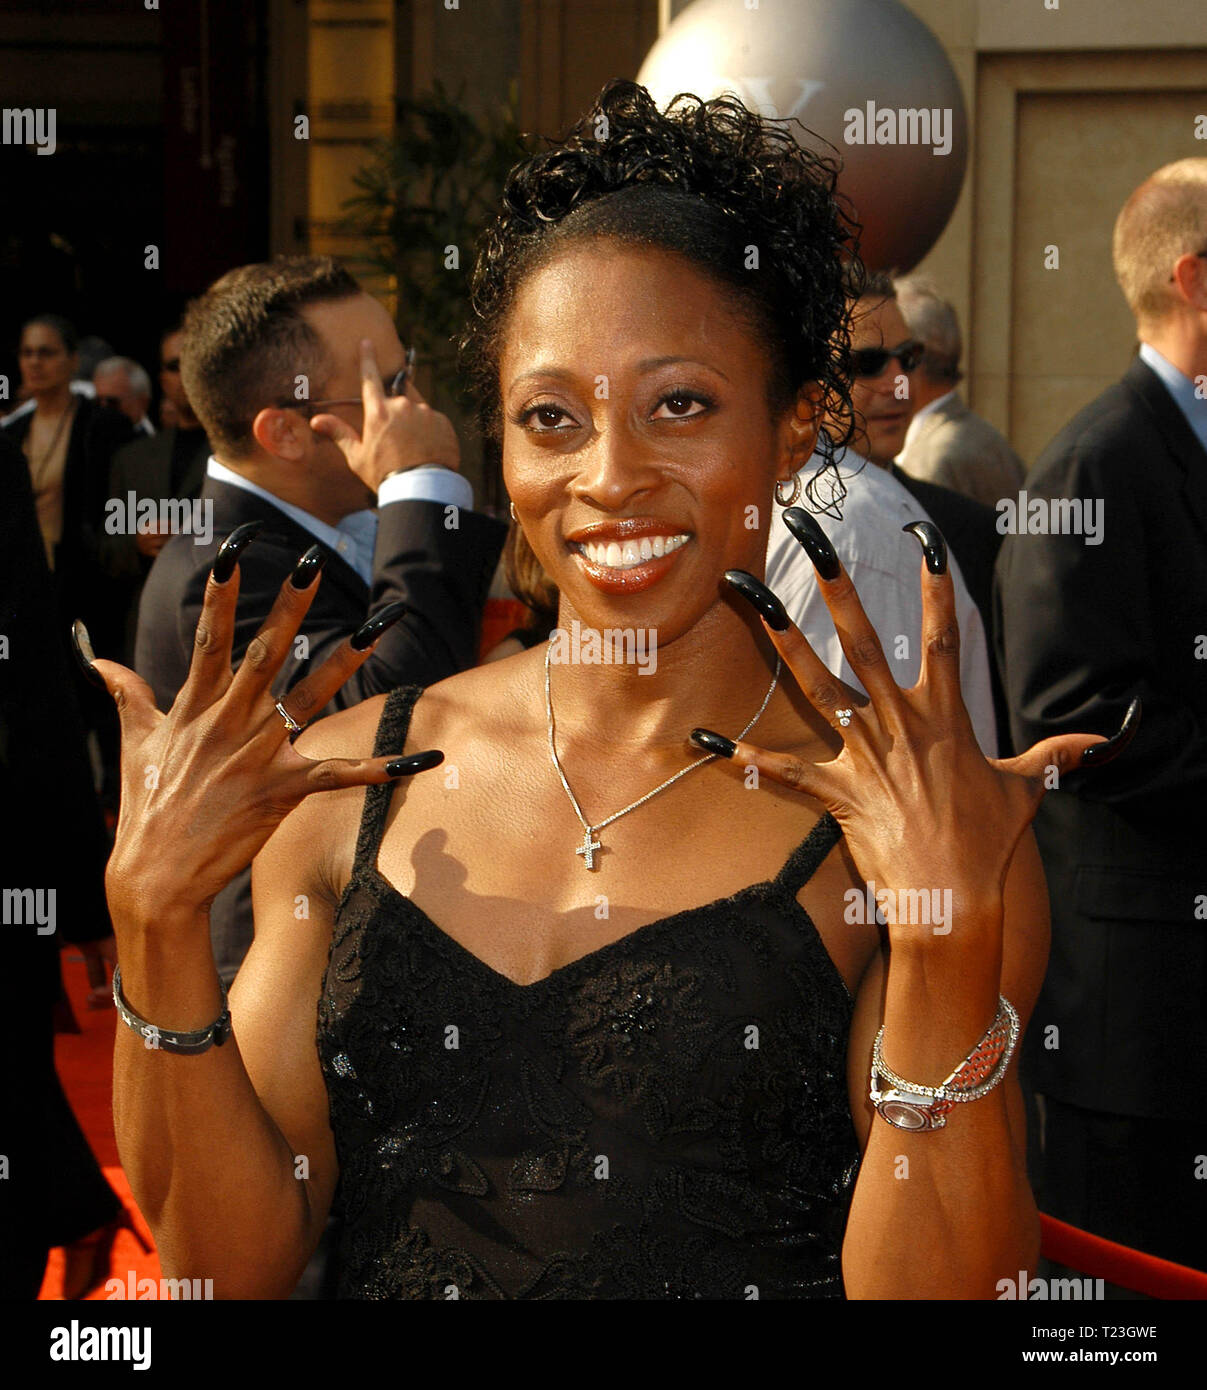 Gail Devers at The 11th Annual ESPY Awards, held at The Kodak Theatre in Hollywood, CA. The event took place on Wednesday, July 16, 2003.  Photo Credit: Sthanlee B. Mirador/ PictureLux - Stock Image